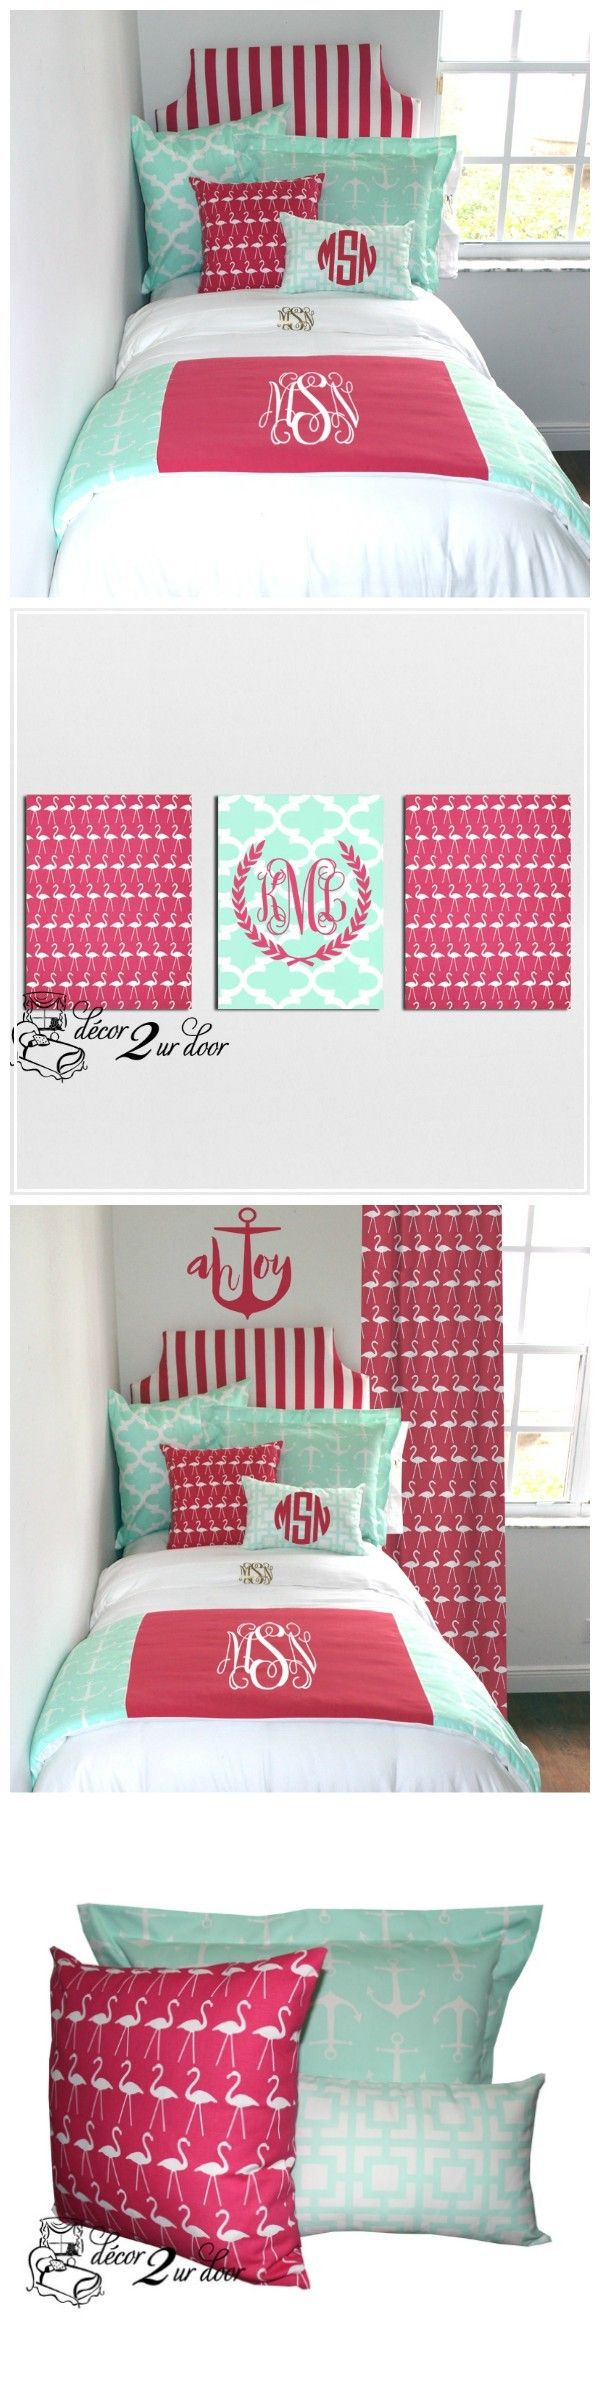 best 25+ dorm bedding sets ideas only on pinterest | dorm room